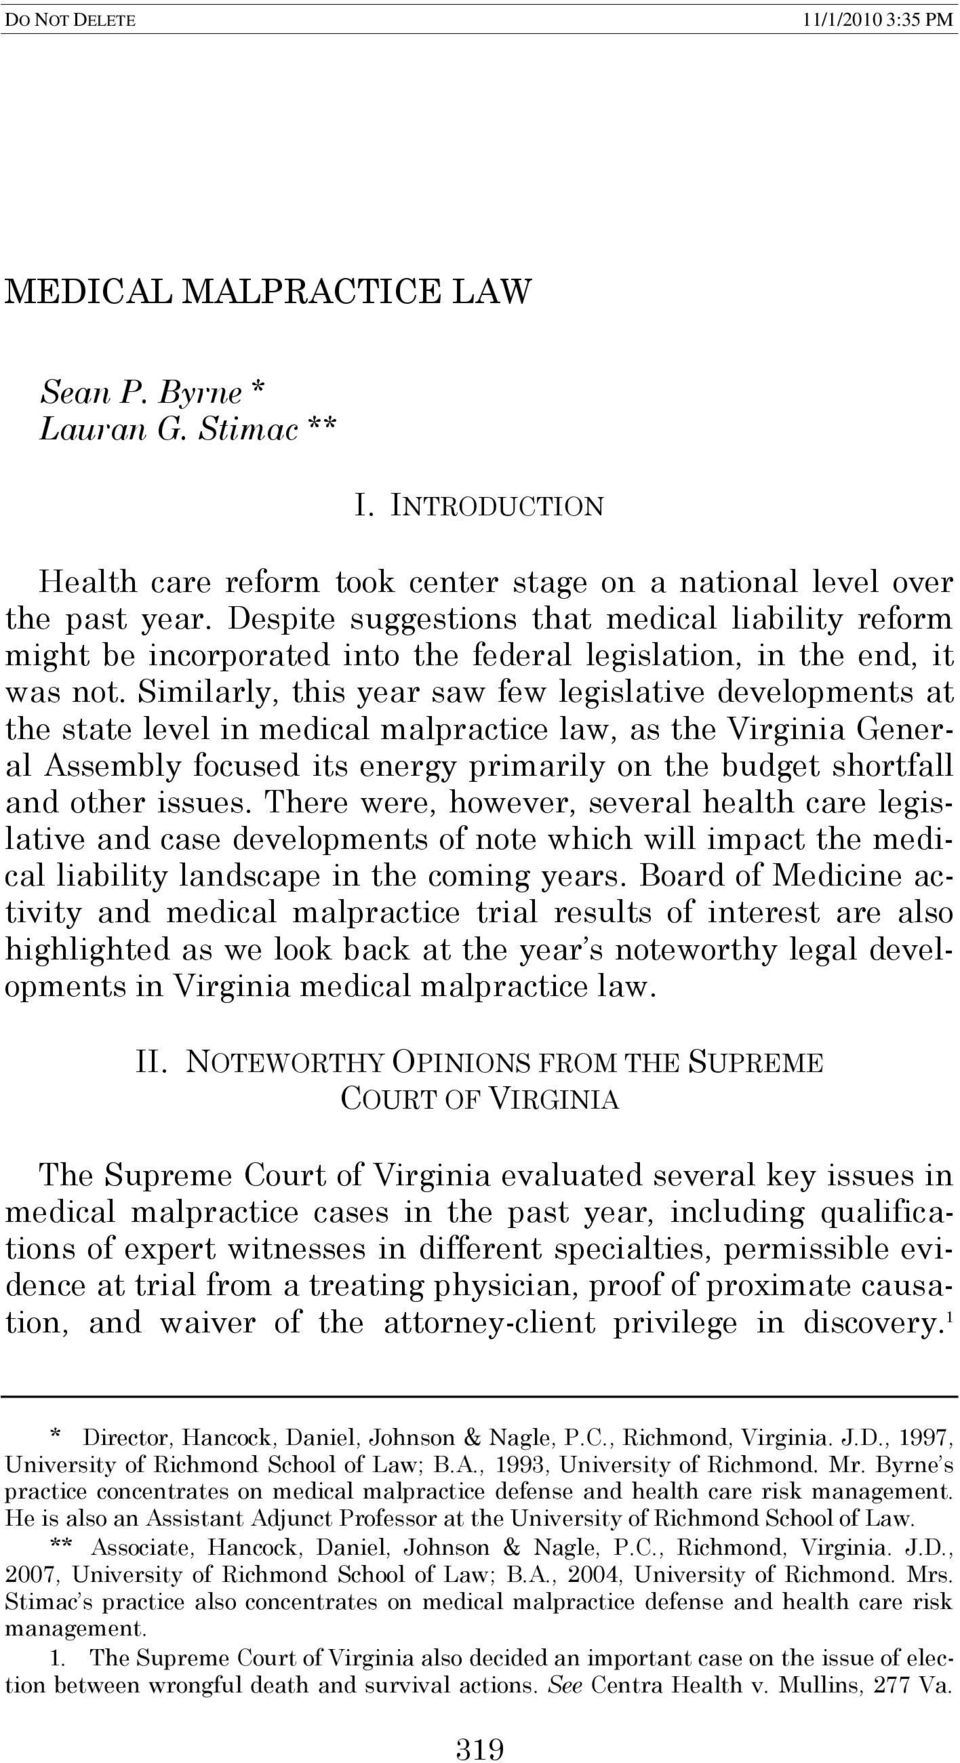 Similarly, this year saw few legislative developments at the state level in medical malpractice law, as the Virginia General Assembly focused its energy primarily on the budget shortfall and other